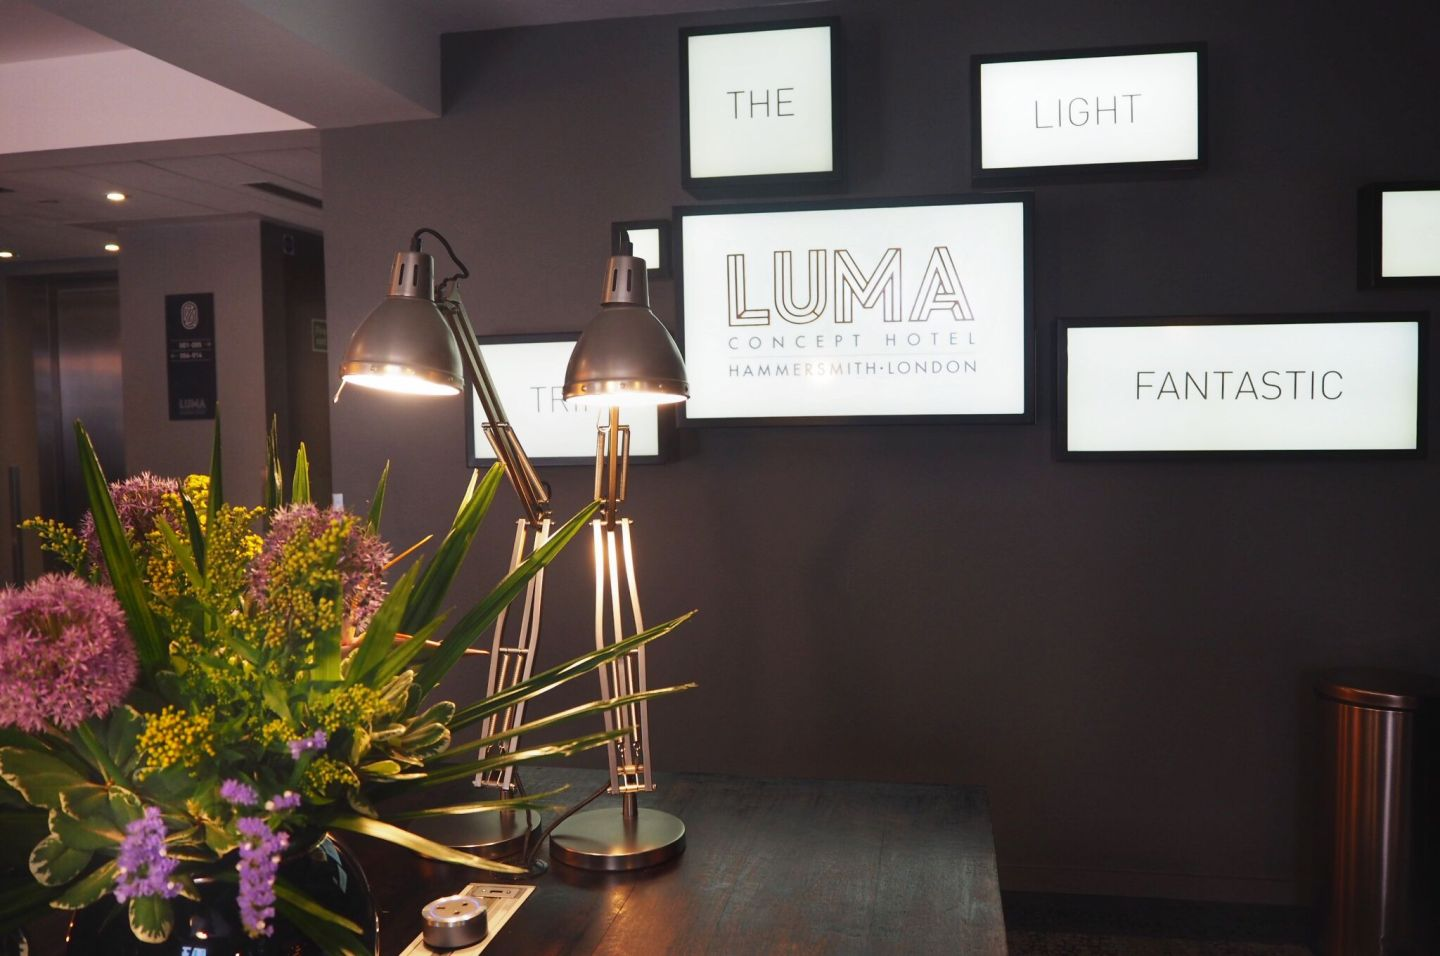 The LightFantastic Luma Hotel